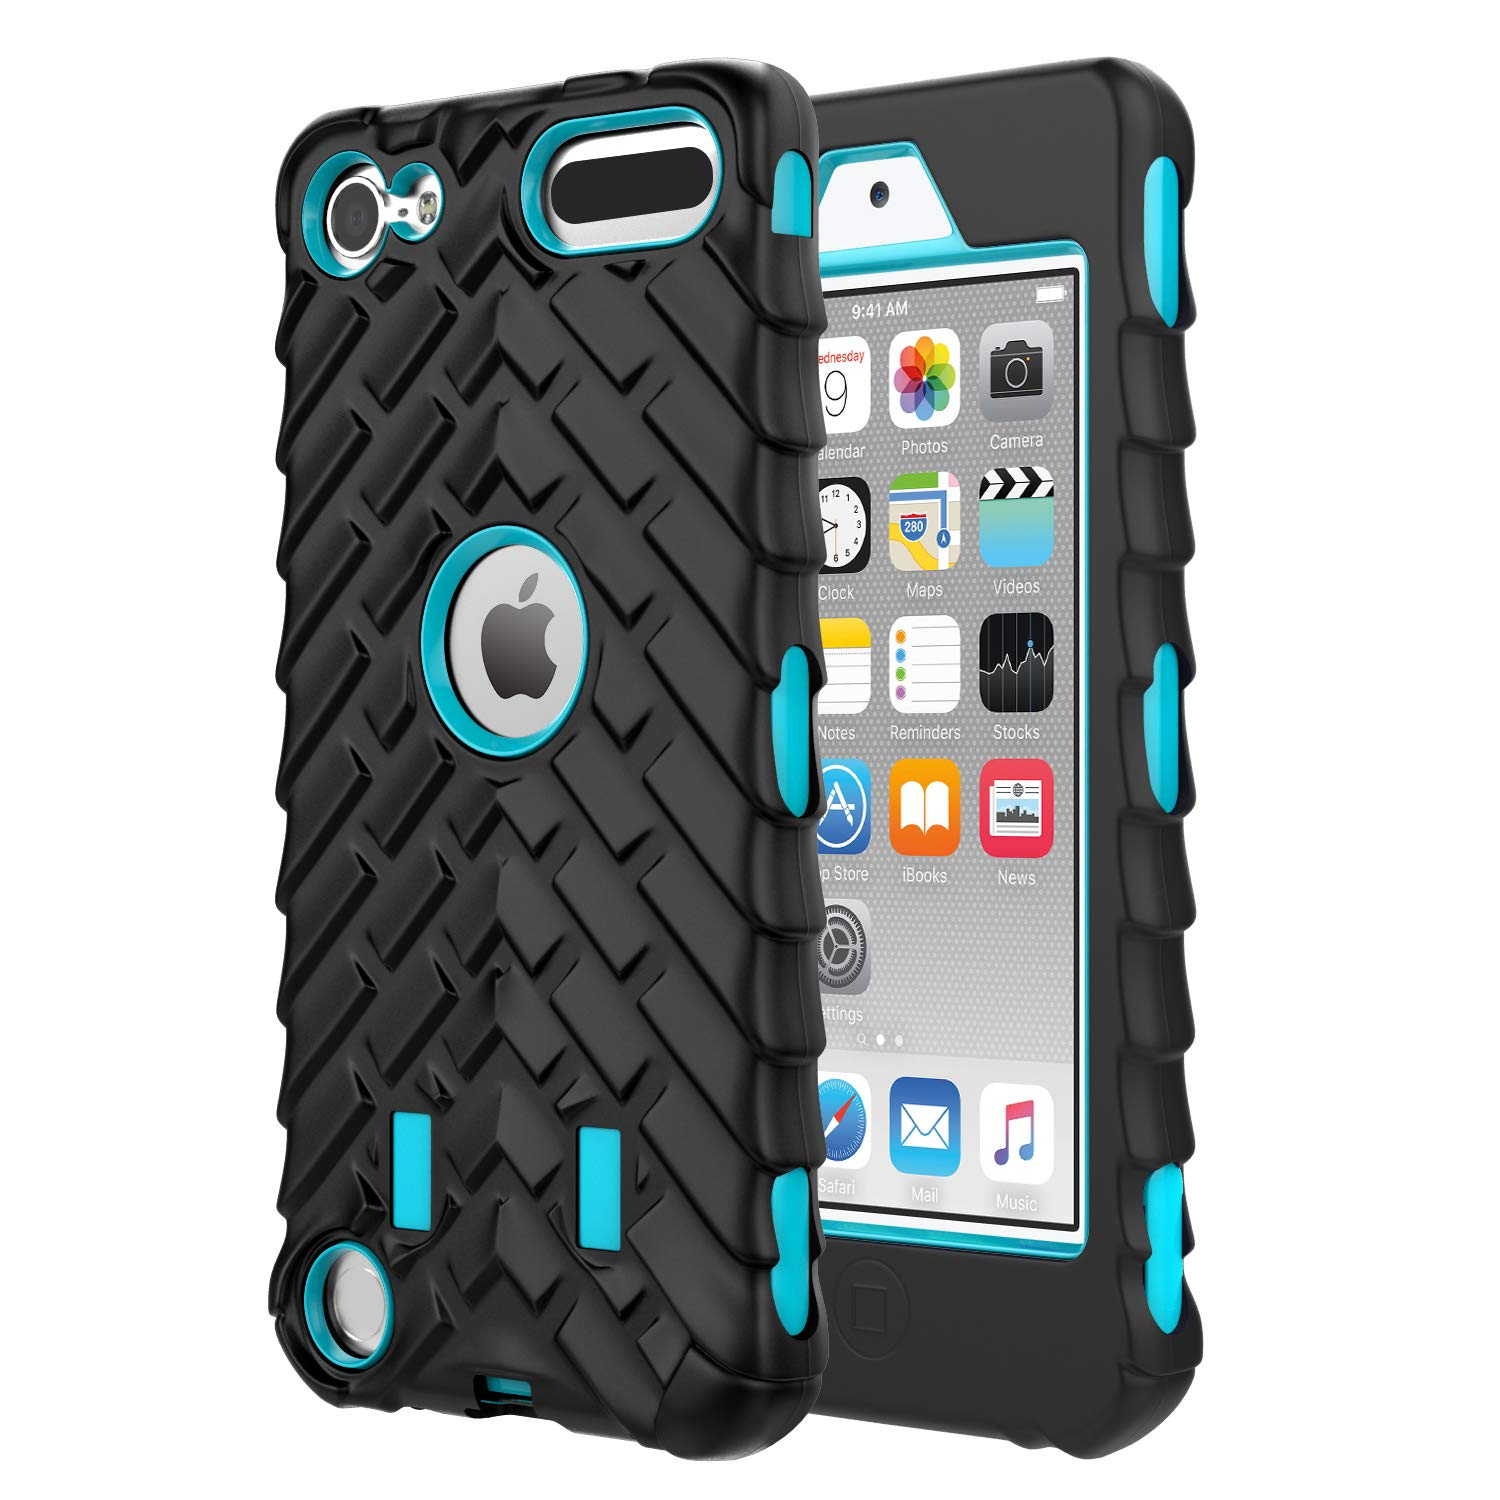 MoKo Case for iPod Touch 6 / iPod Touch 5, 3 in 1 Heavy Duty Shock Absorbing Hybrid Bumper Protective Case Cover for Apple iPod Touch 6th / 5th Generation, Black